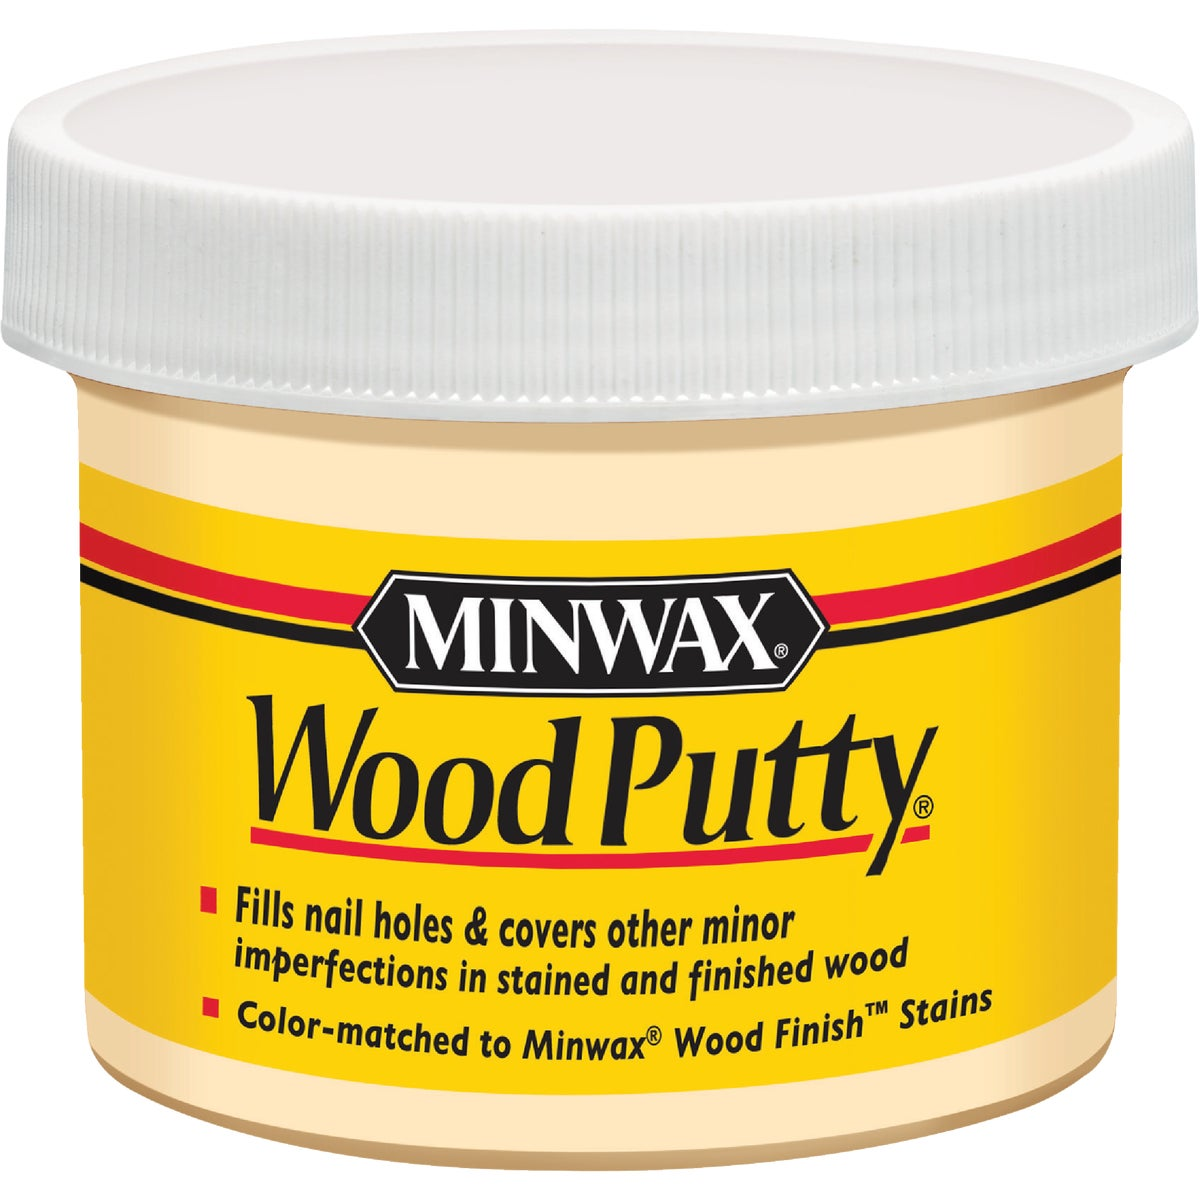 PICKLED OAK WOOD PUTTY - 13619 by Minwax Company